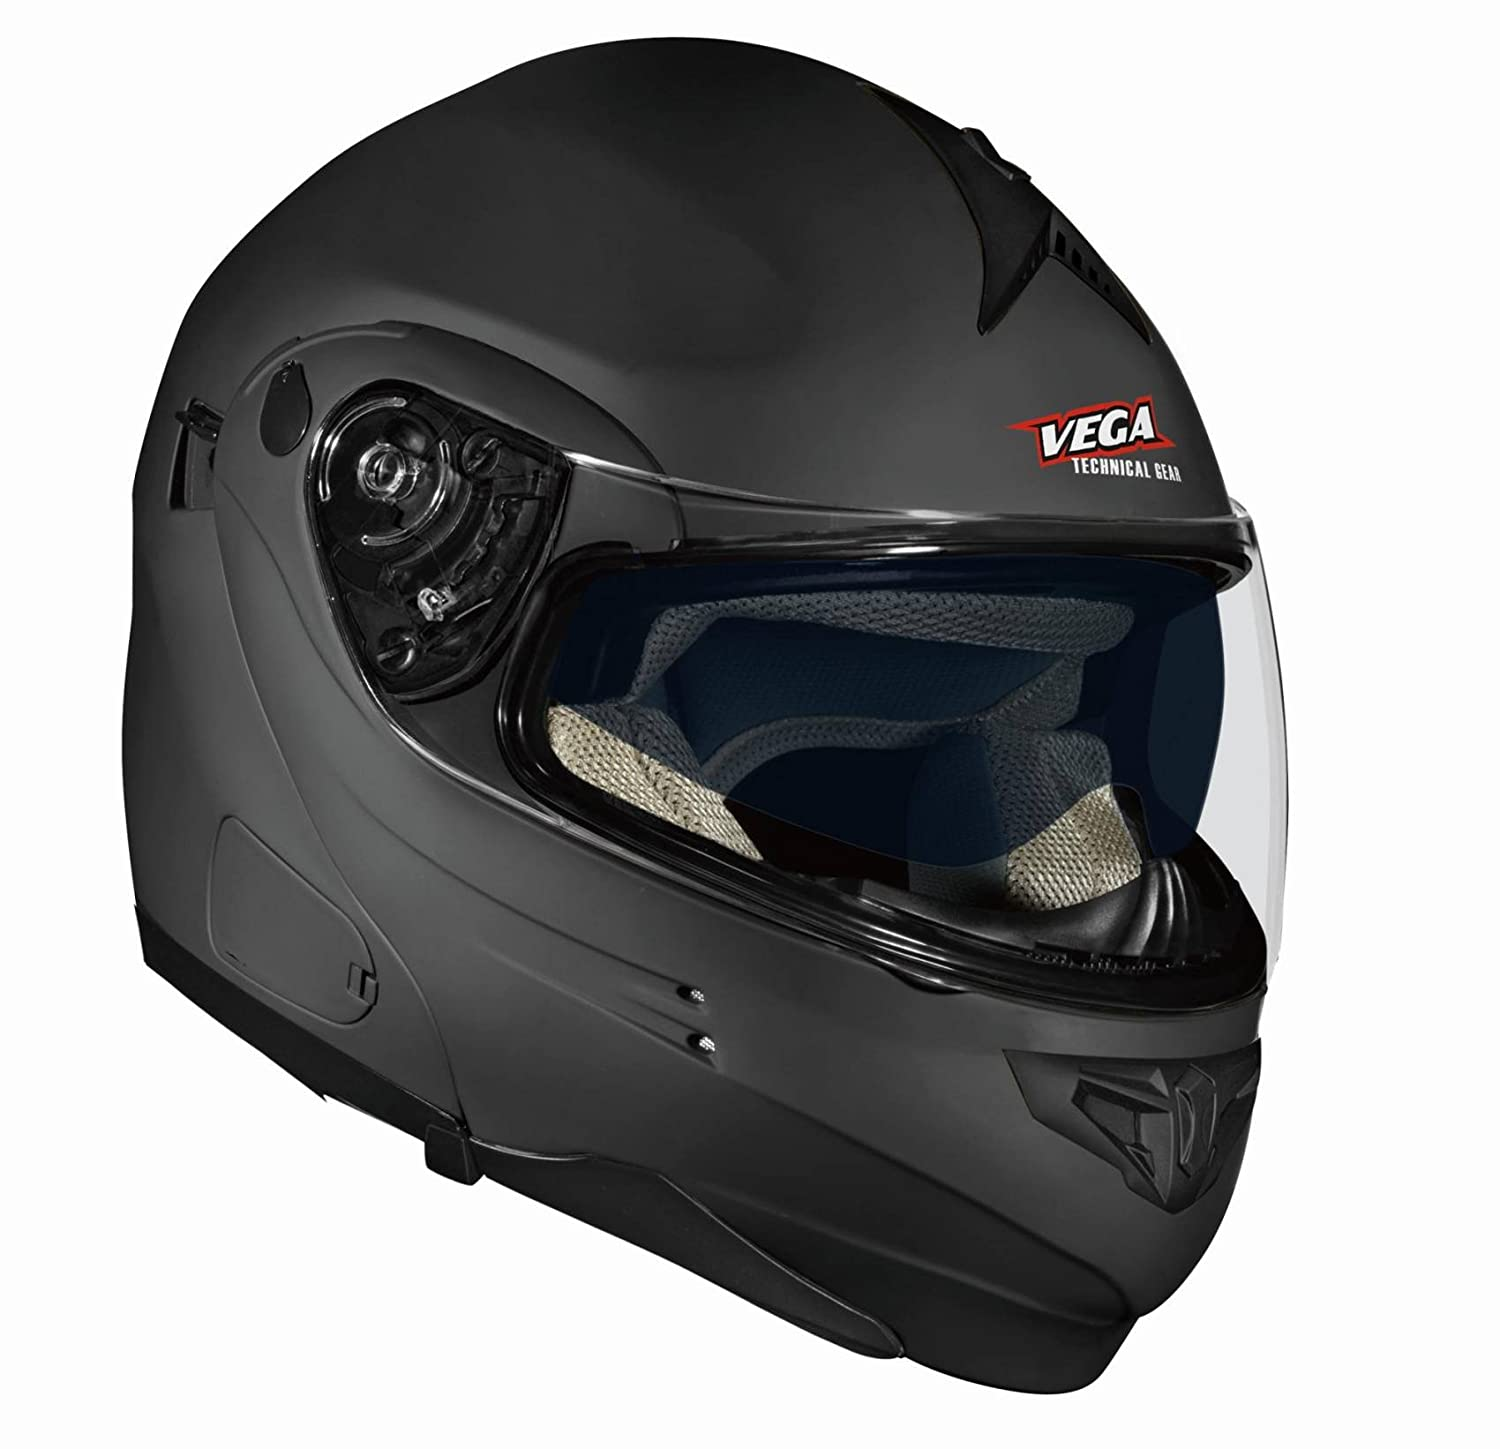 Amazon.com: Vega Summit 3.1 Full Face Modular Helmet (Flat Black, Small): Automotive